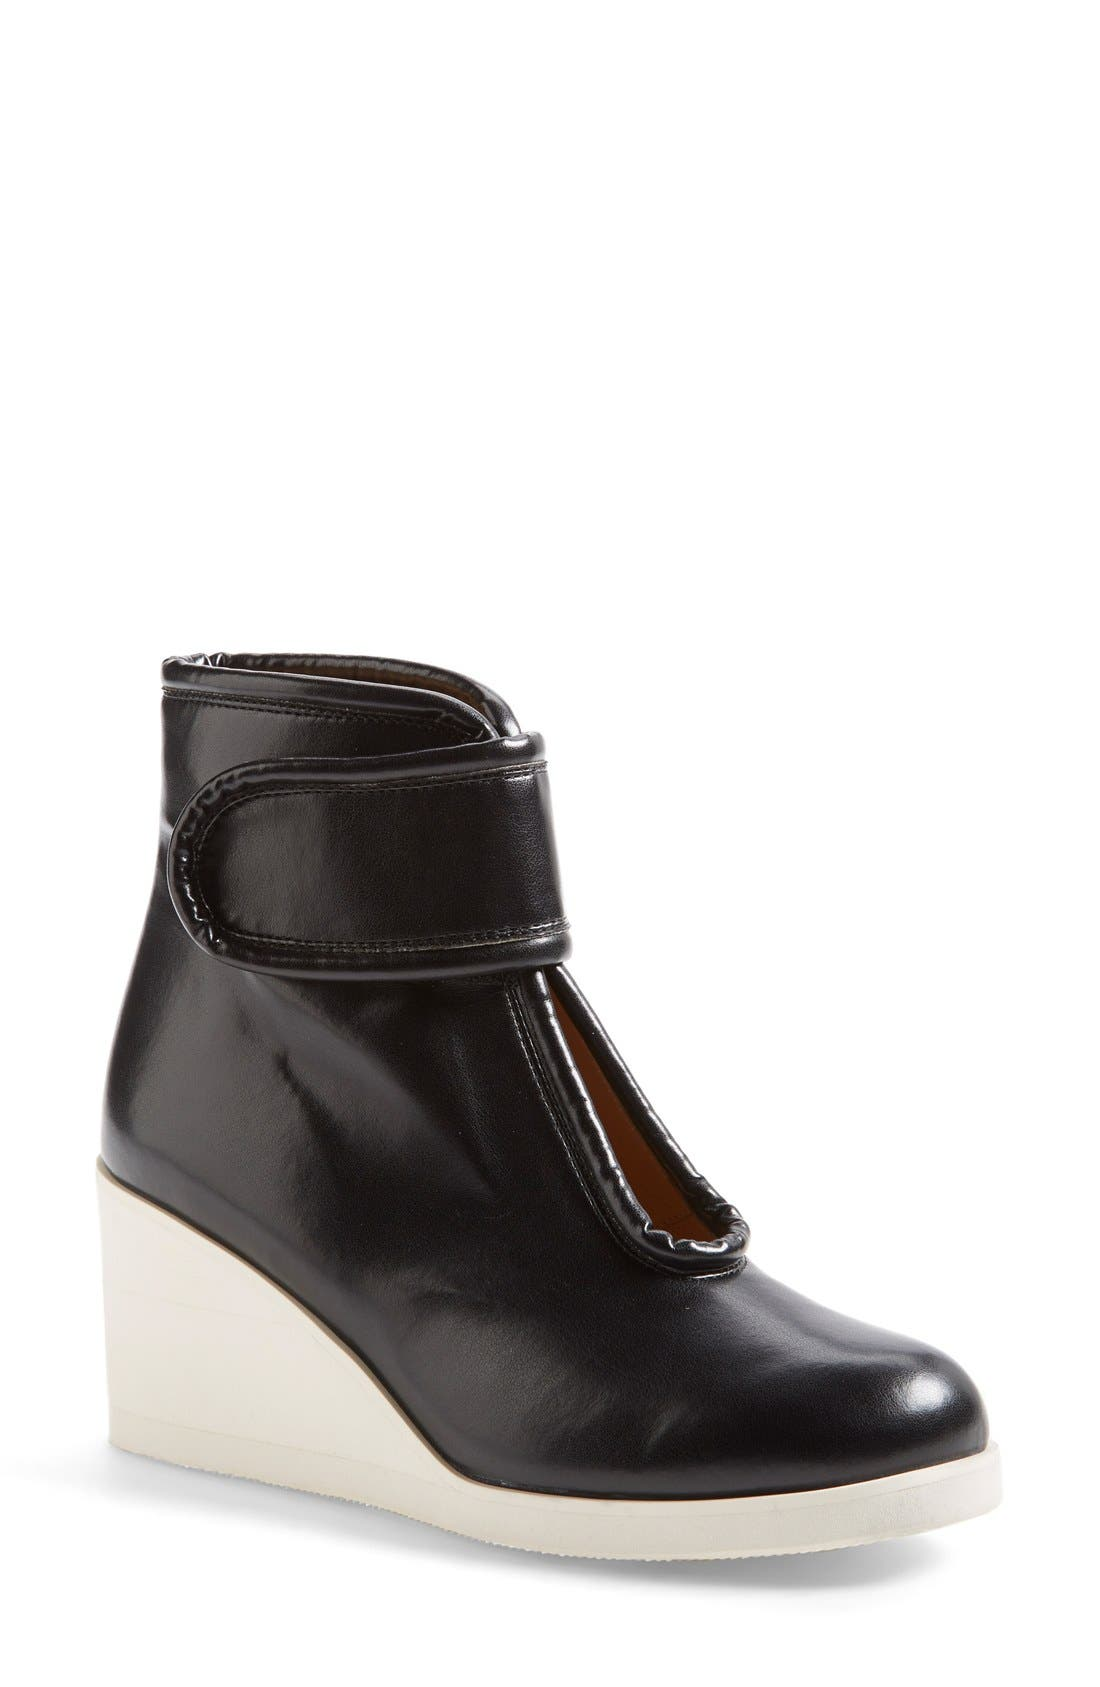 Main Image - MM6 Maison Margiela Nappa Leather Wedge Bootie (Women)